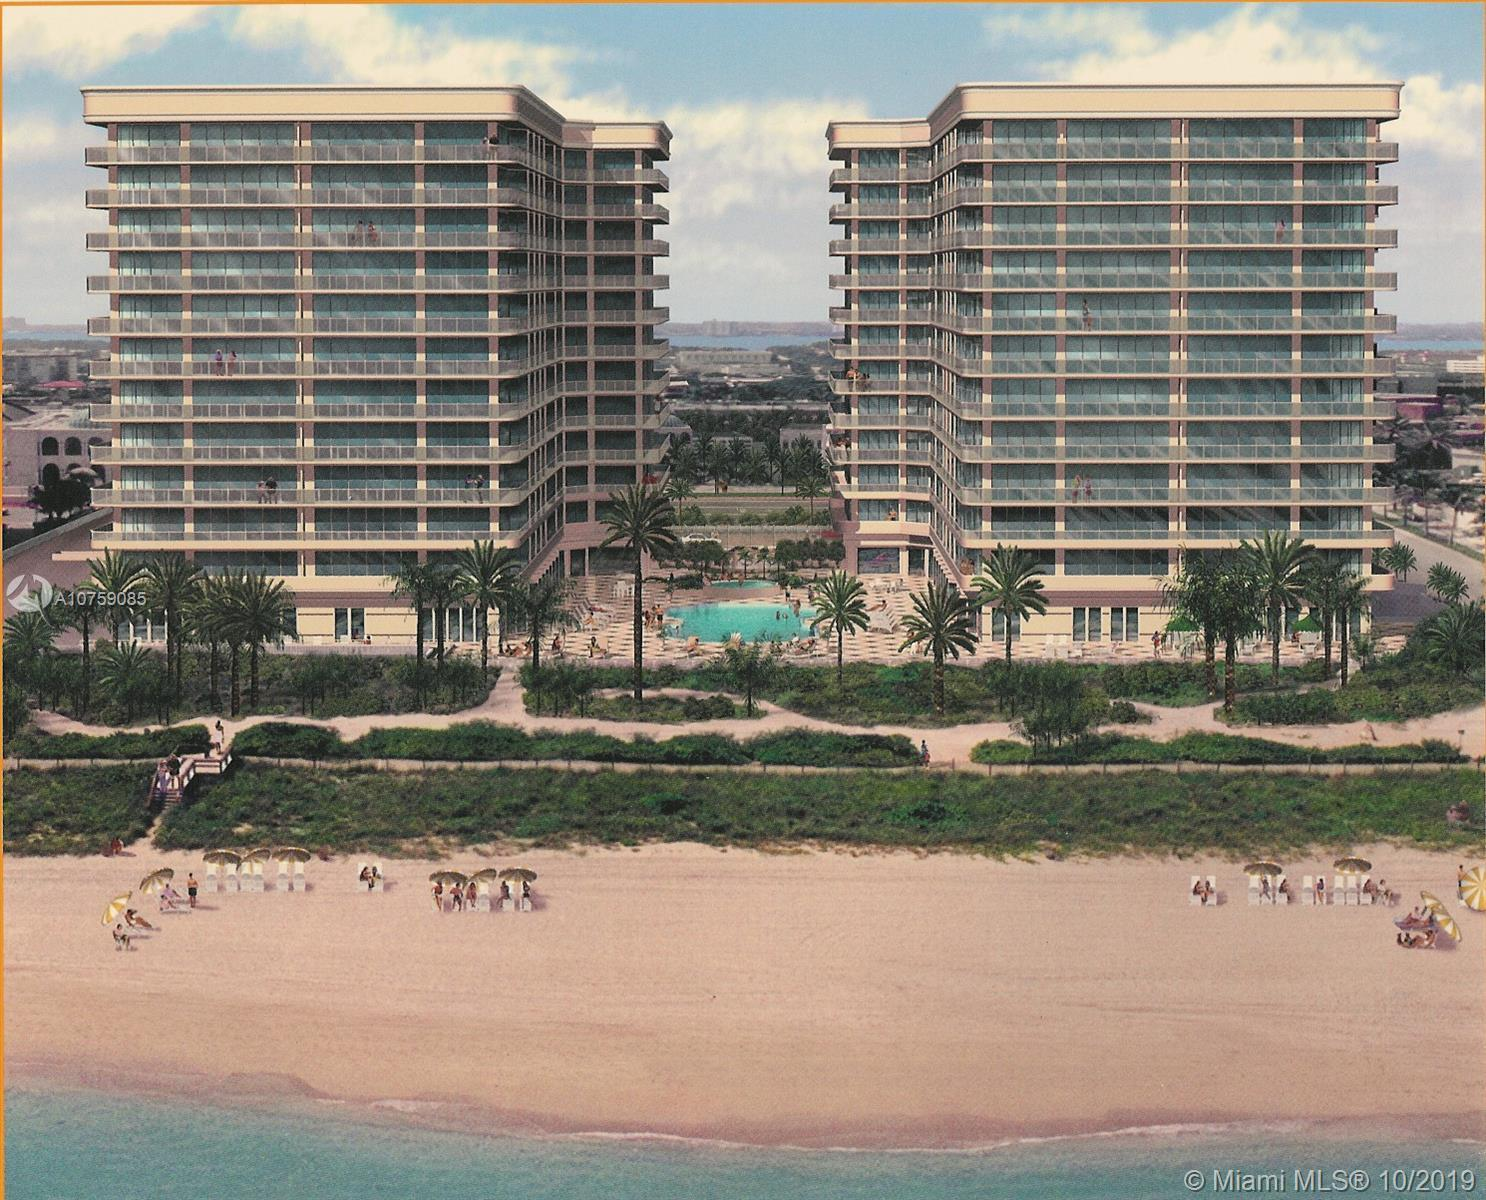 Impecable unit with 2 bedrooms 2.5 baths.  Nice view of the ocean with the pool area included. 